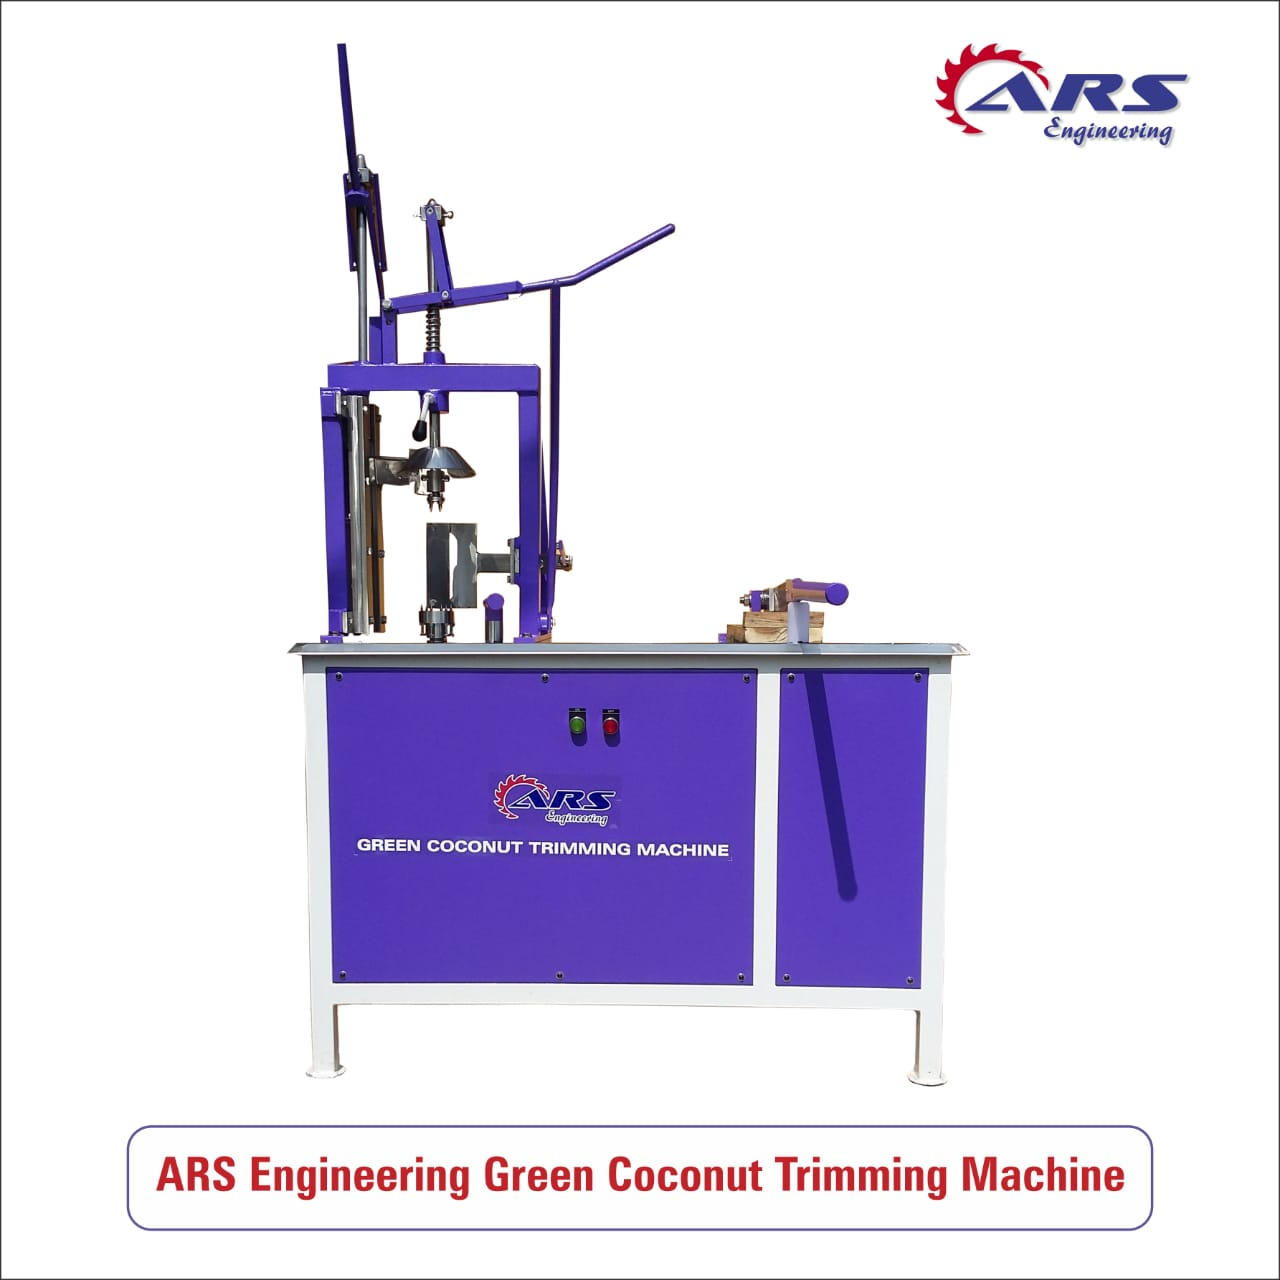 ARS Engineering Coconut Trimming Machine